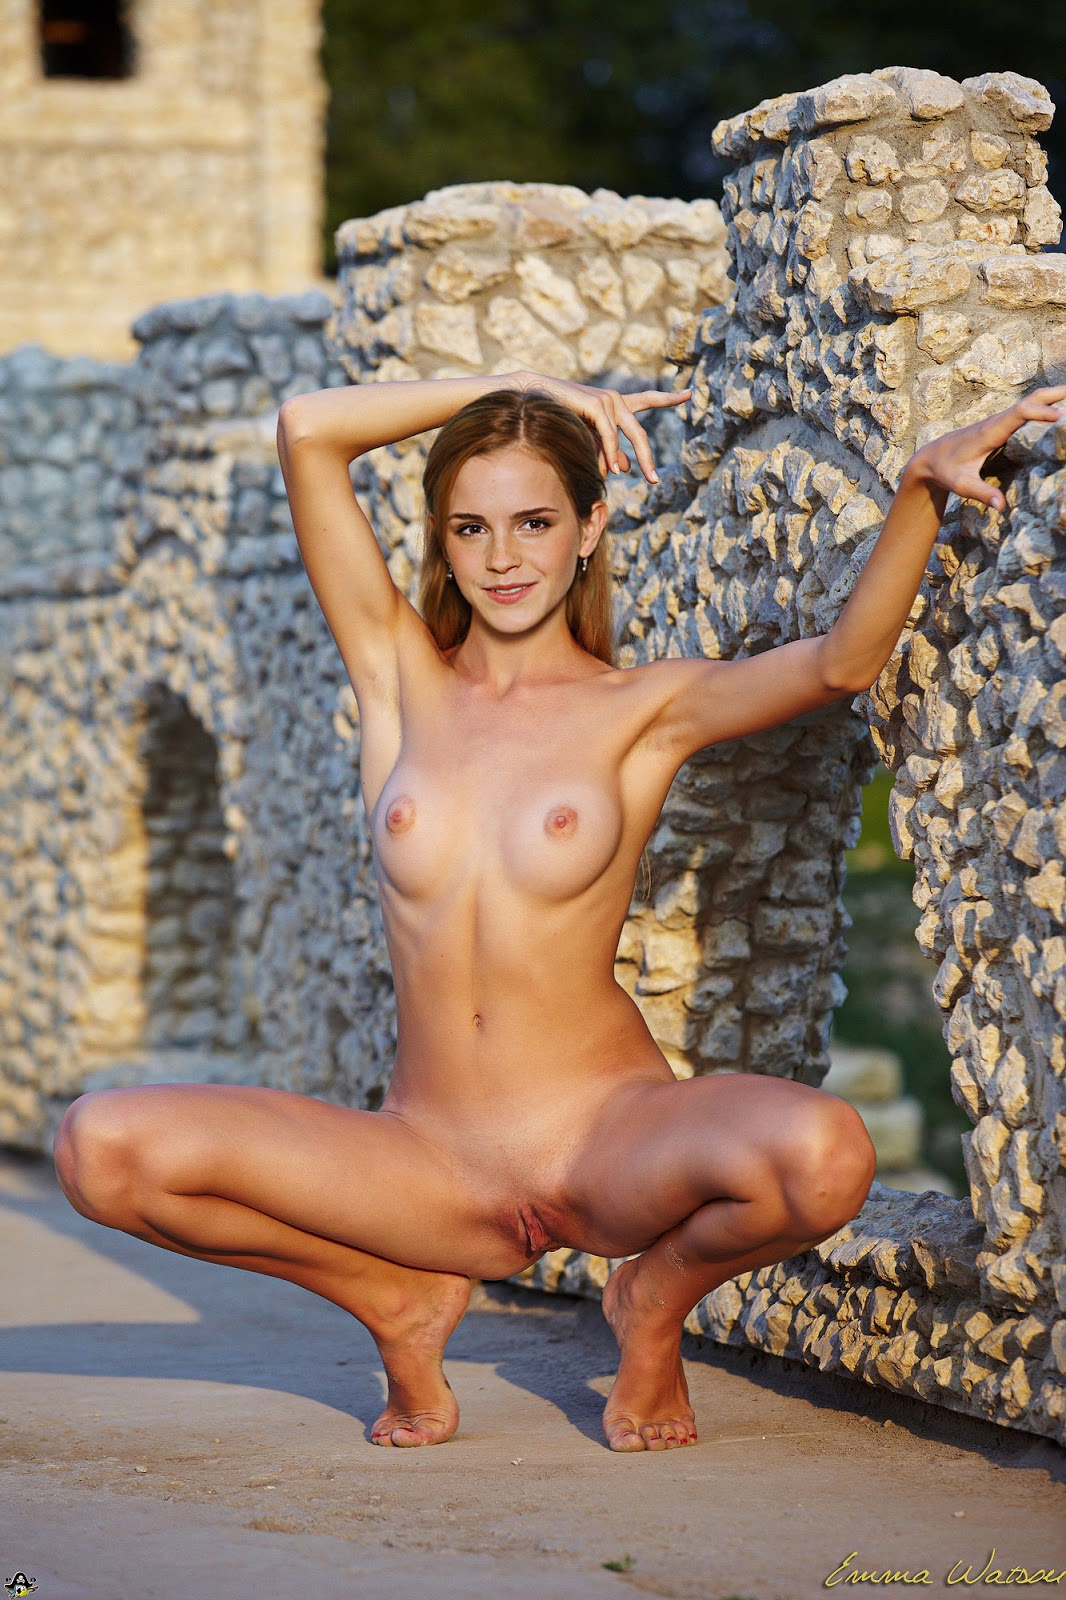 final sm1 123 387lo emma watson nude showing her boobs amp pussy fake